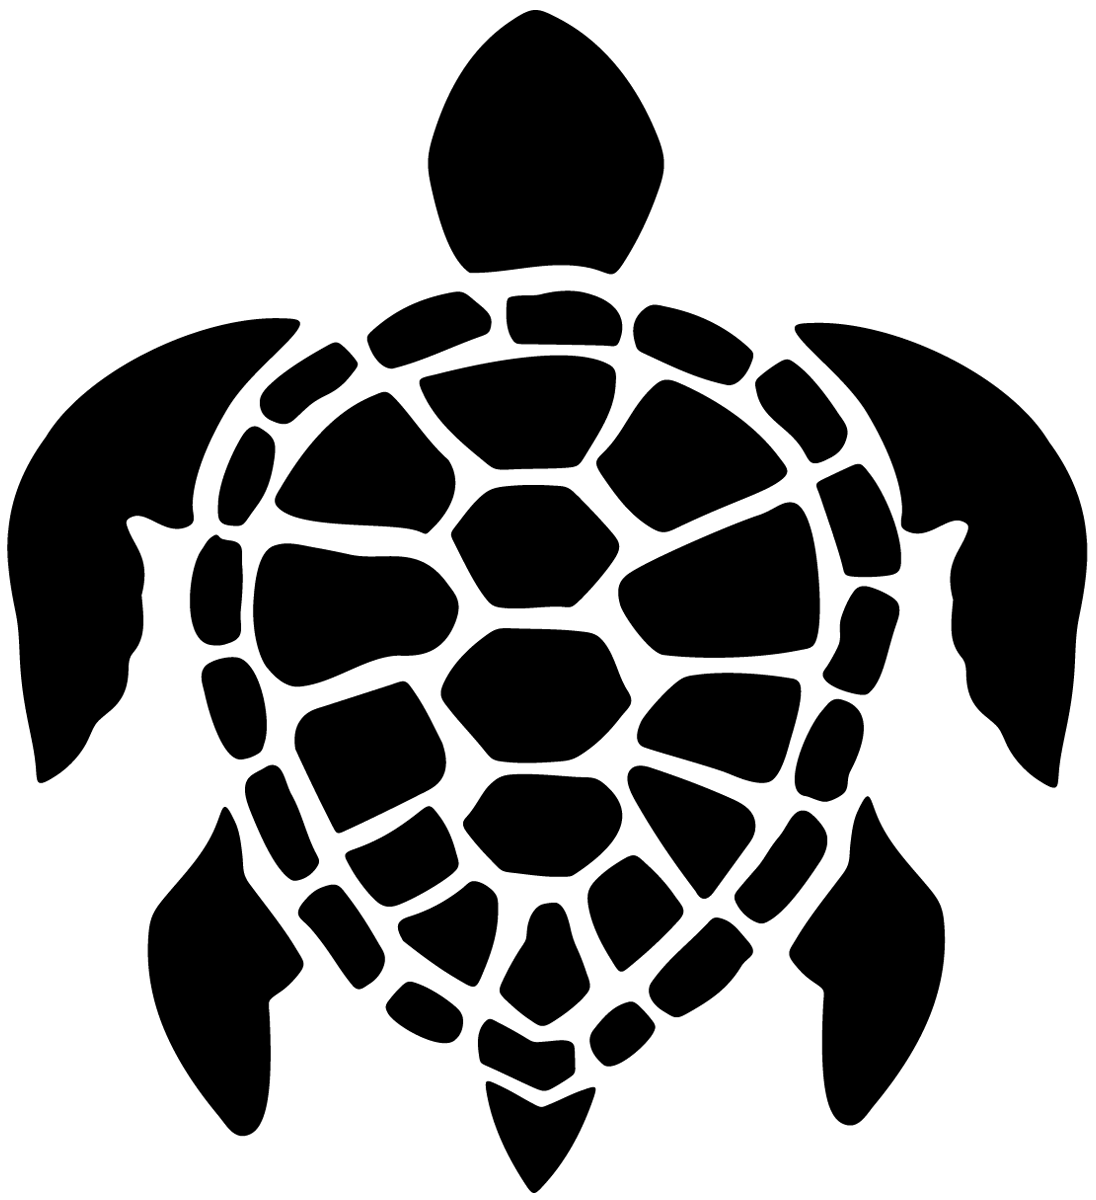 Turtle Silhouette Png Www Imgkid Com The Image Kid Has It